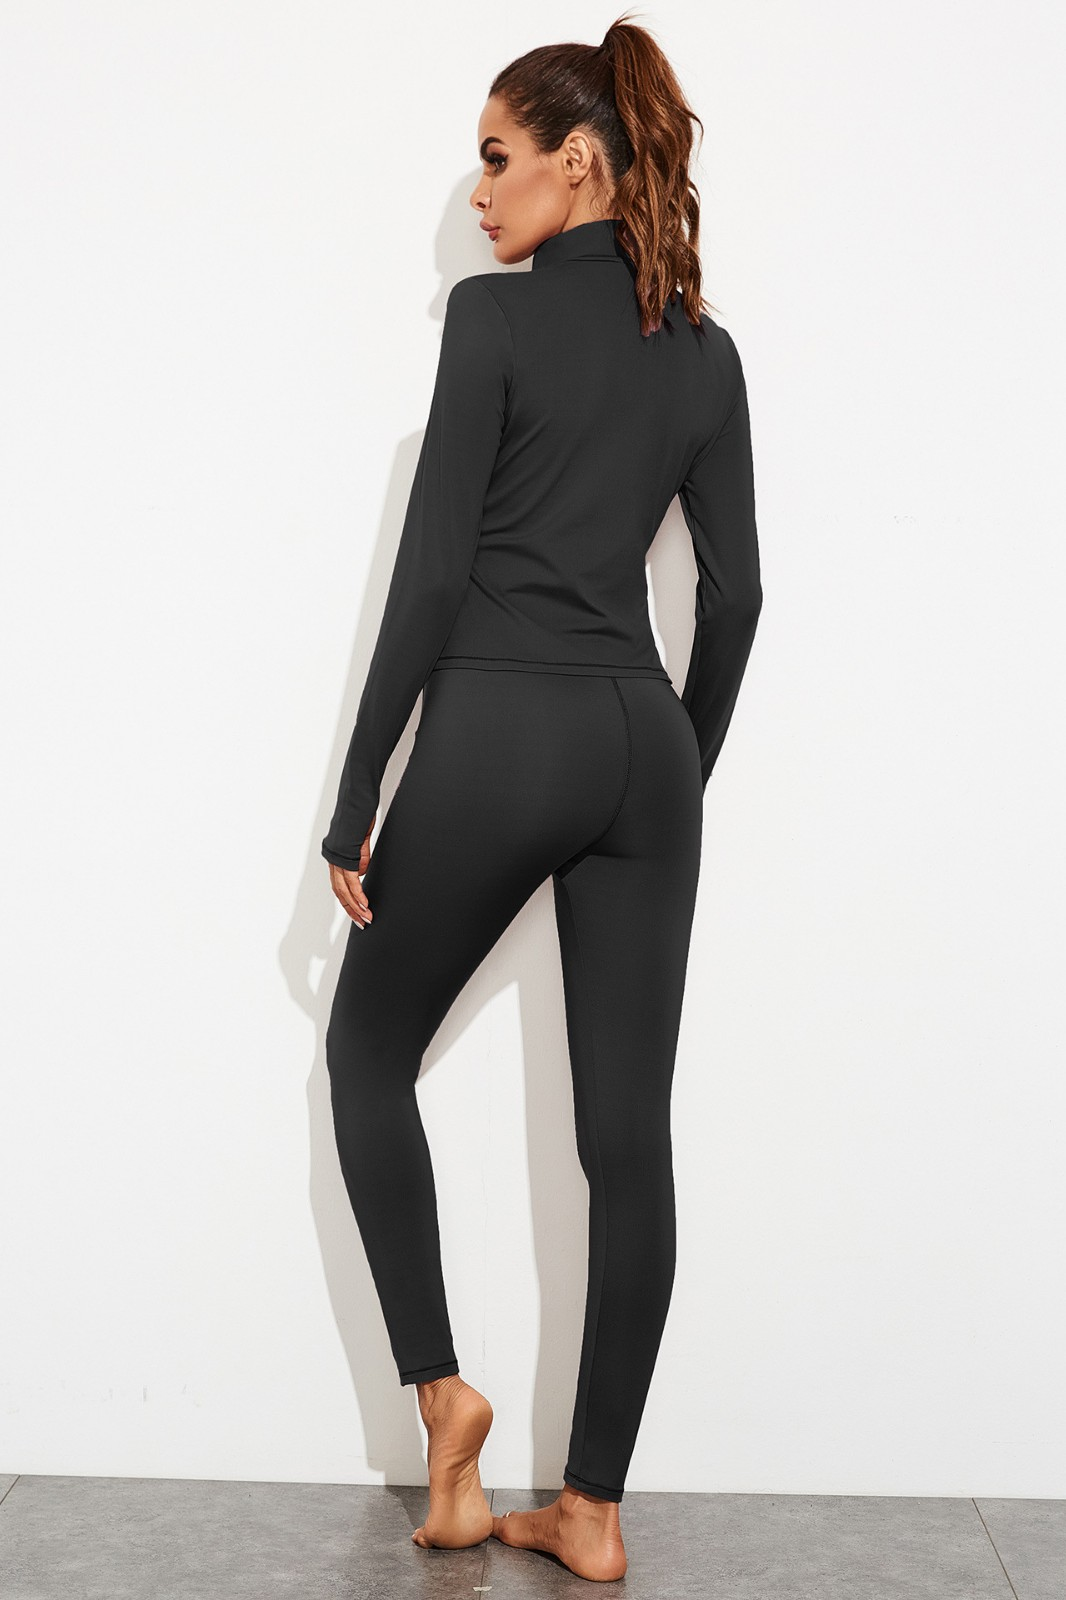 product-Ruiteng-Gym Fitness Clothing Women Tight Long Sleeves Women Suit Sport Wear yoga with Zipper